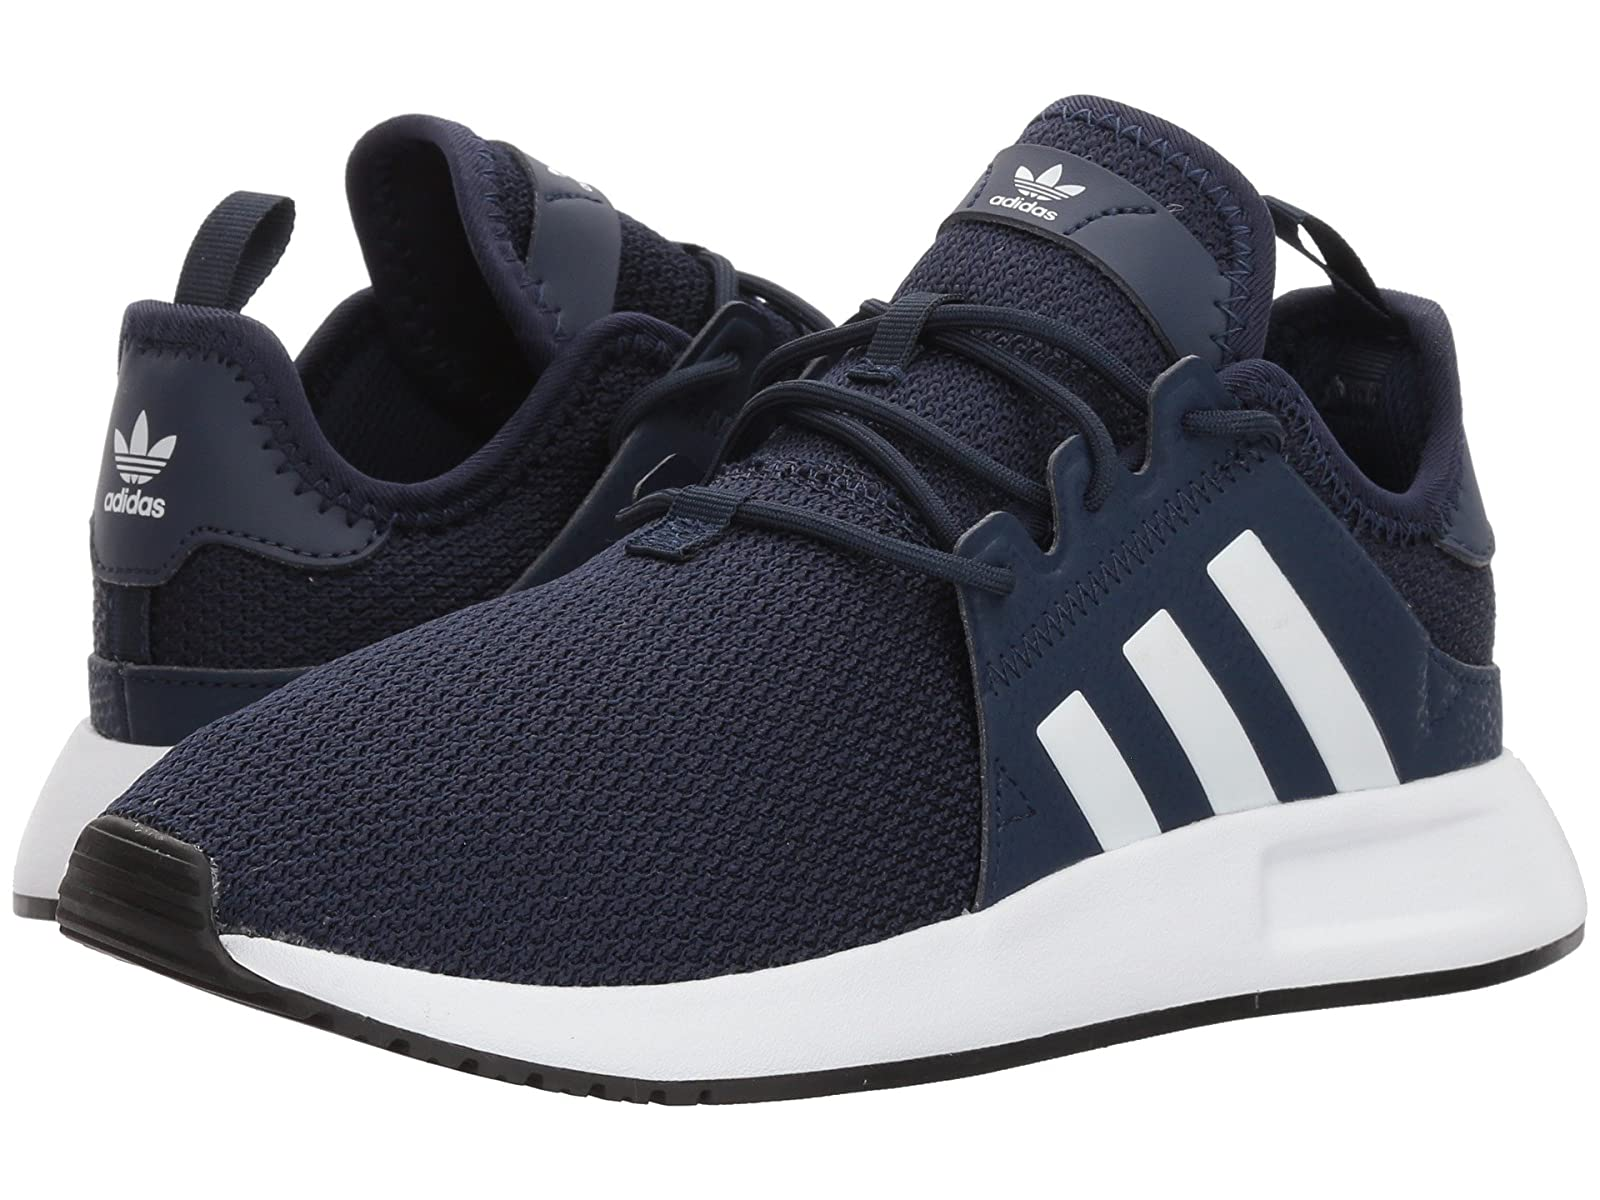 adidas Originals Kids X_PLR C (Little Kid)Atmospheric grades have affordable shoes